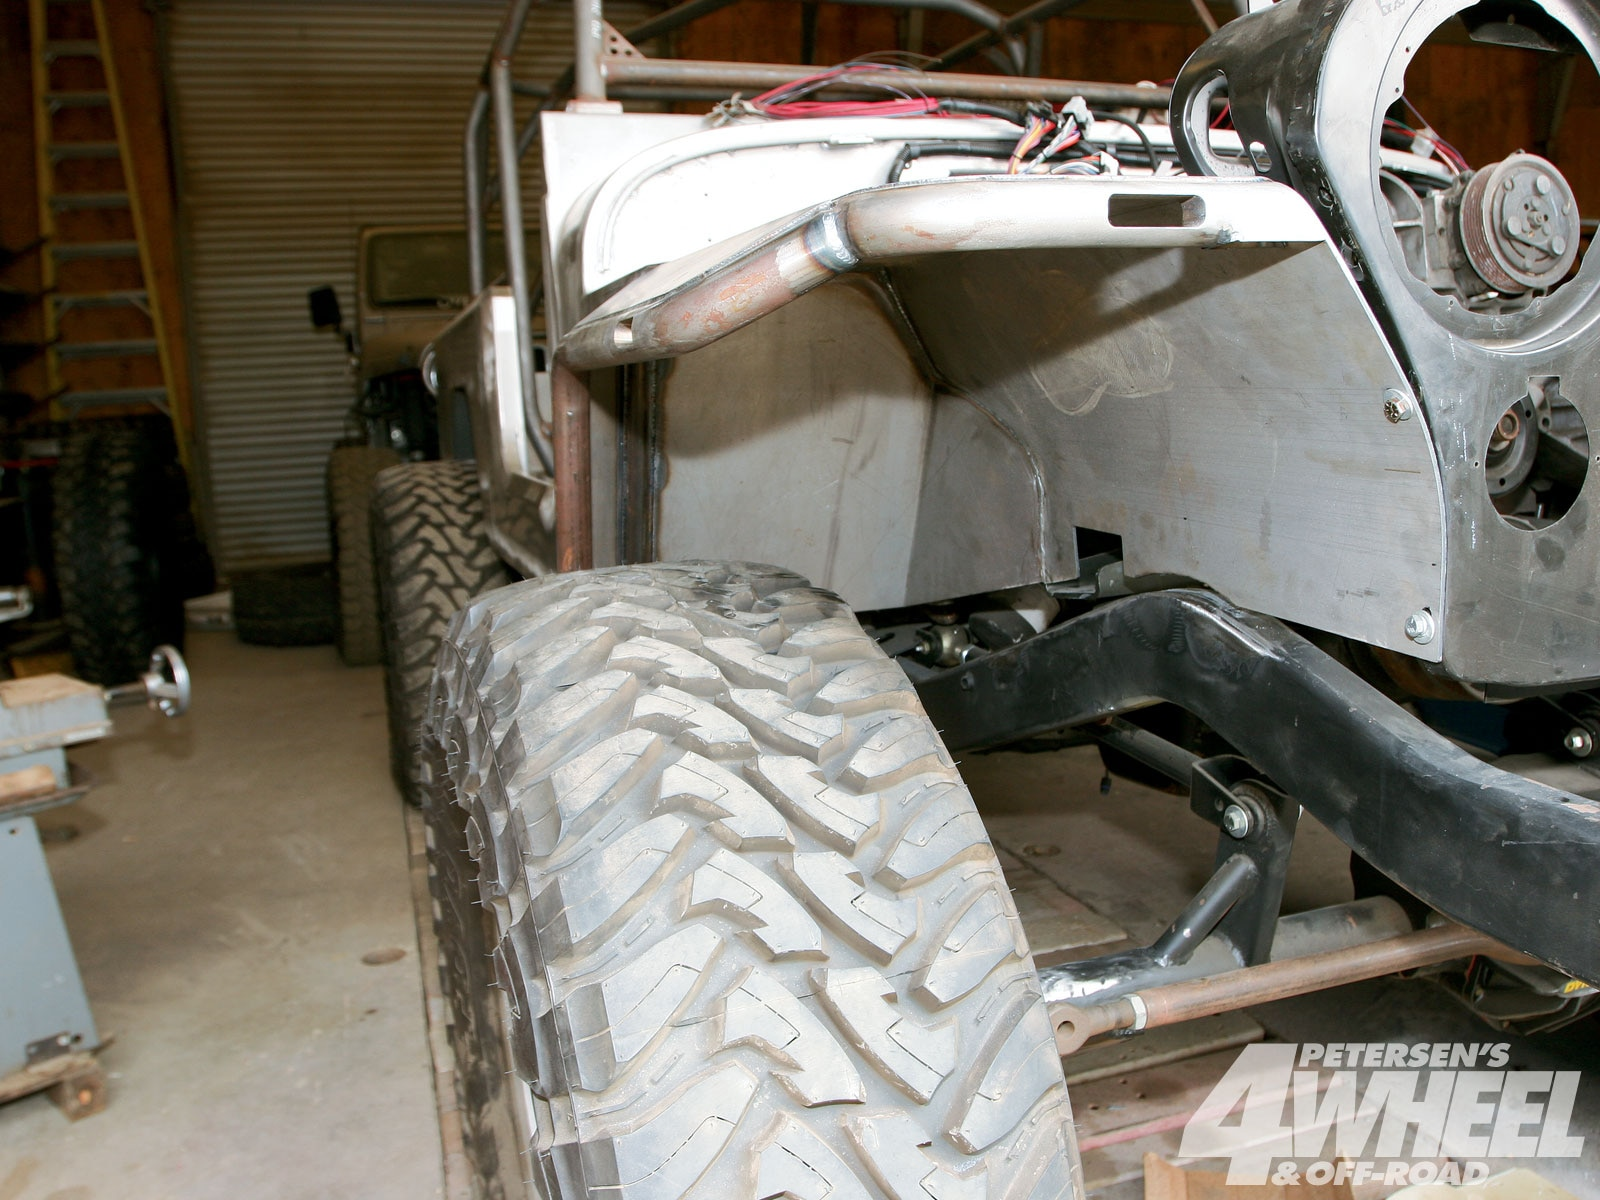 131 1005 03+jeep cj8 scrambler rock fenders suspension+fenderwell